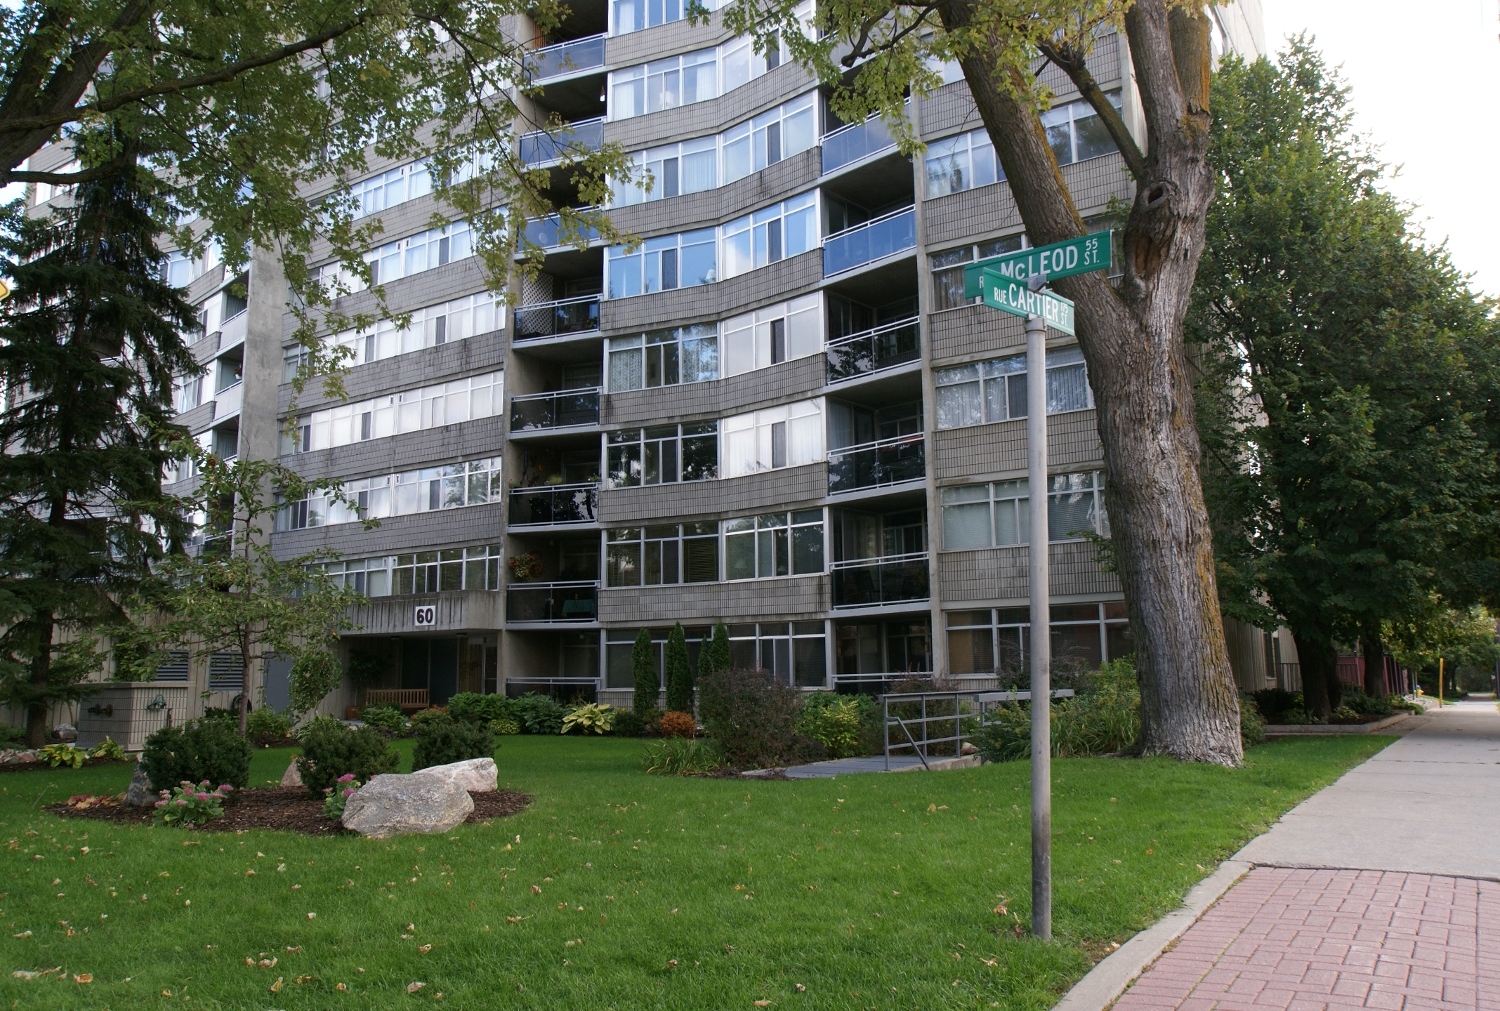 807 – 60 McLeod St – Rented January 2018